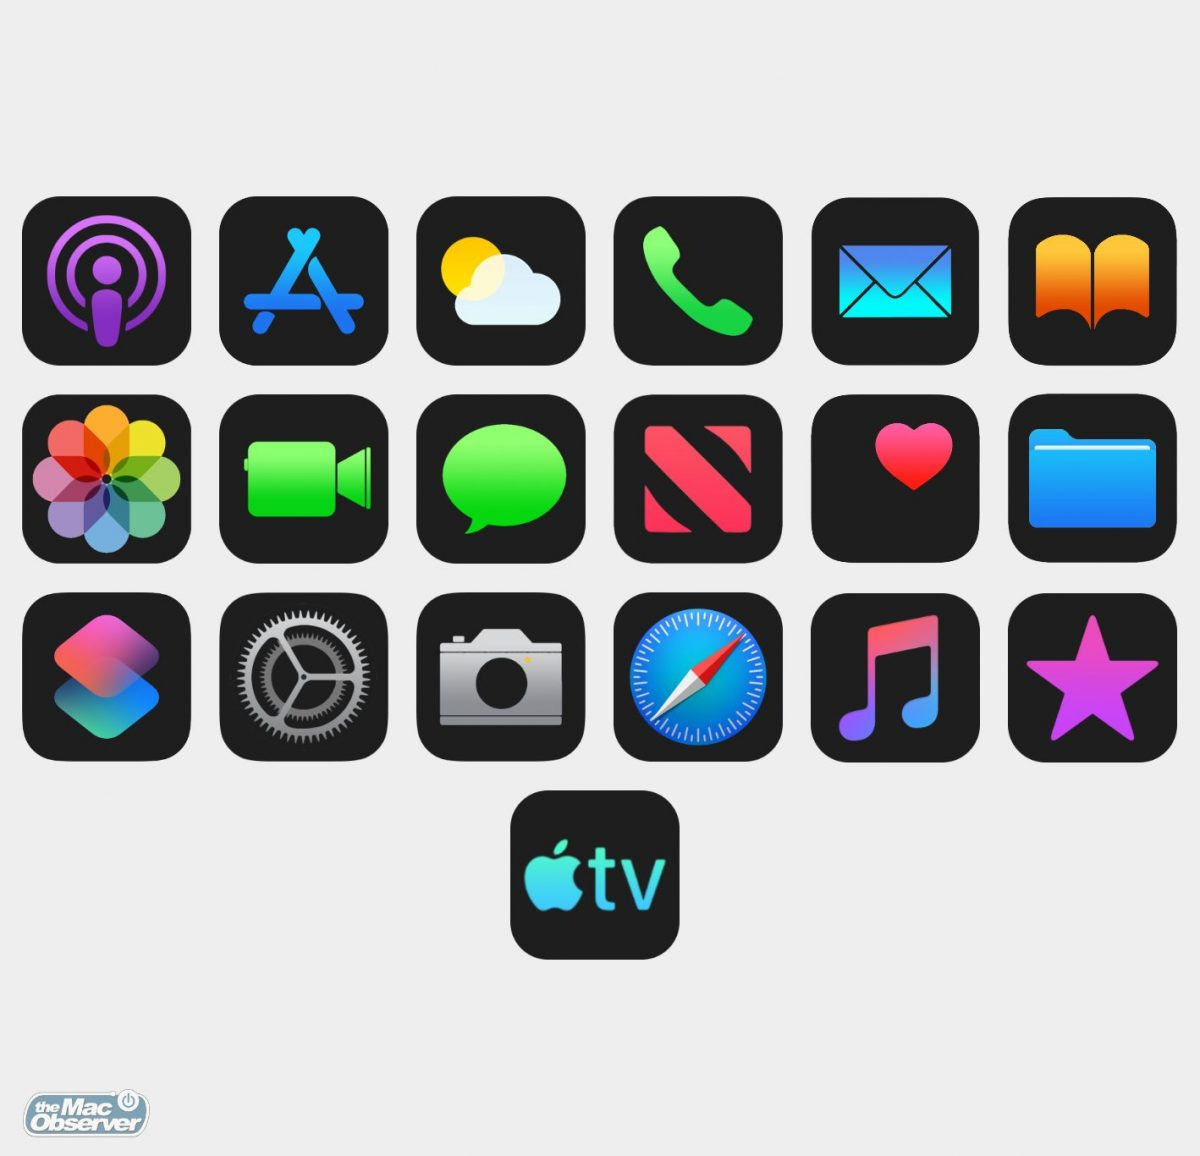 Dark mode icons mockup